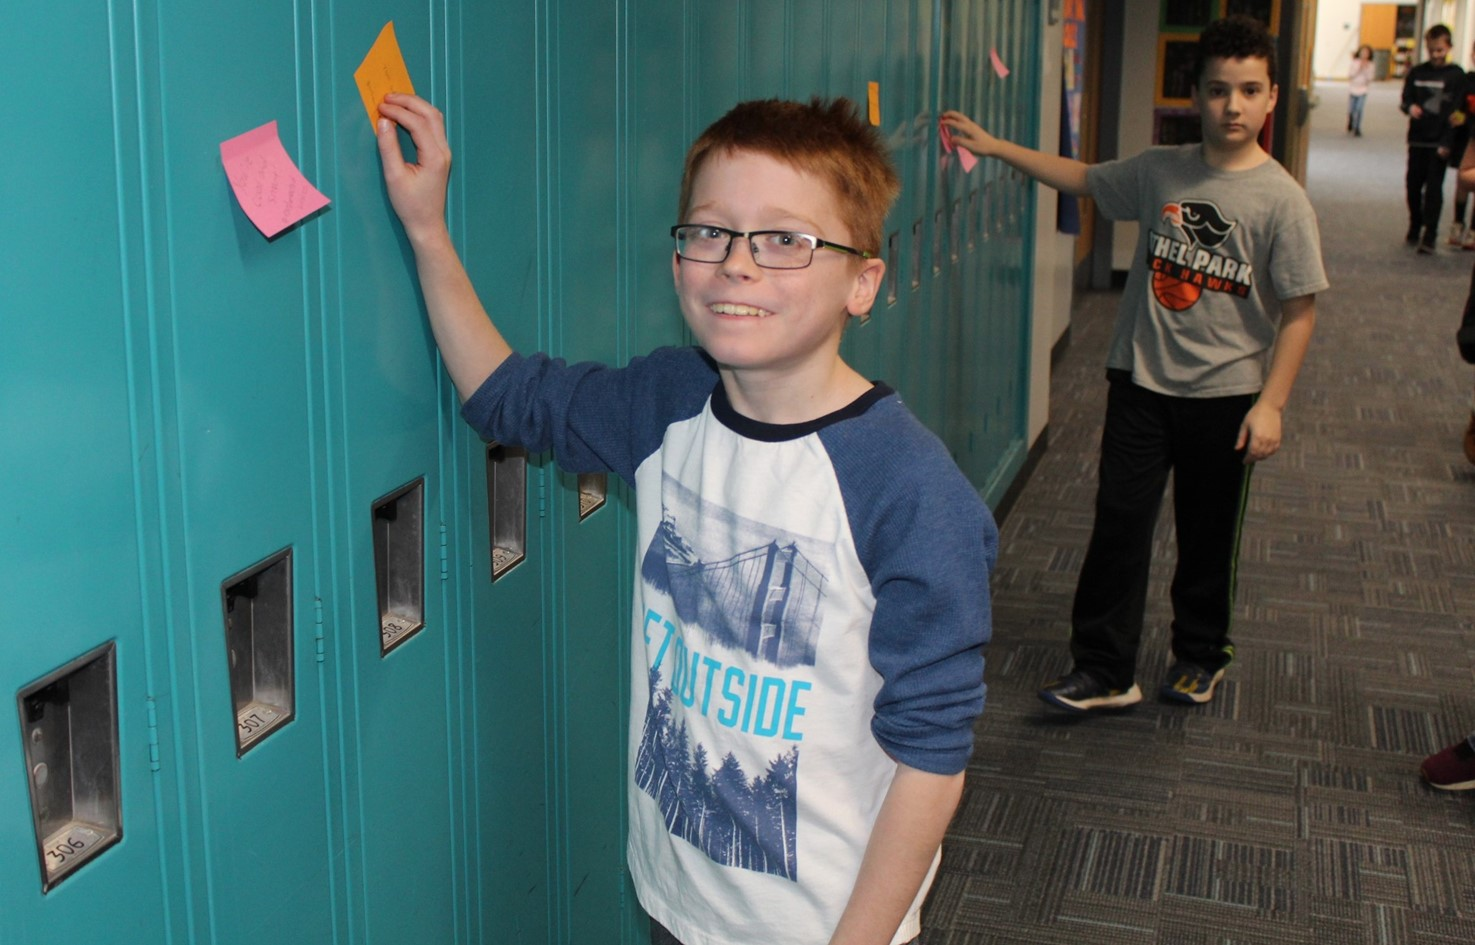 Two students putting sticky notes on lockers